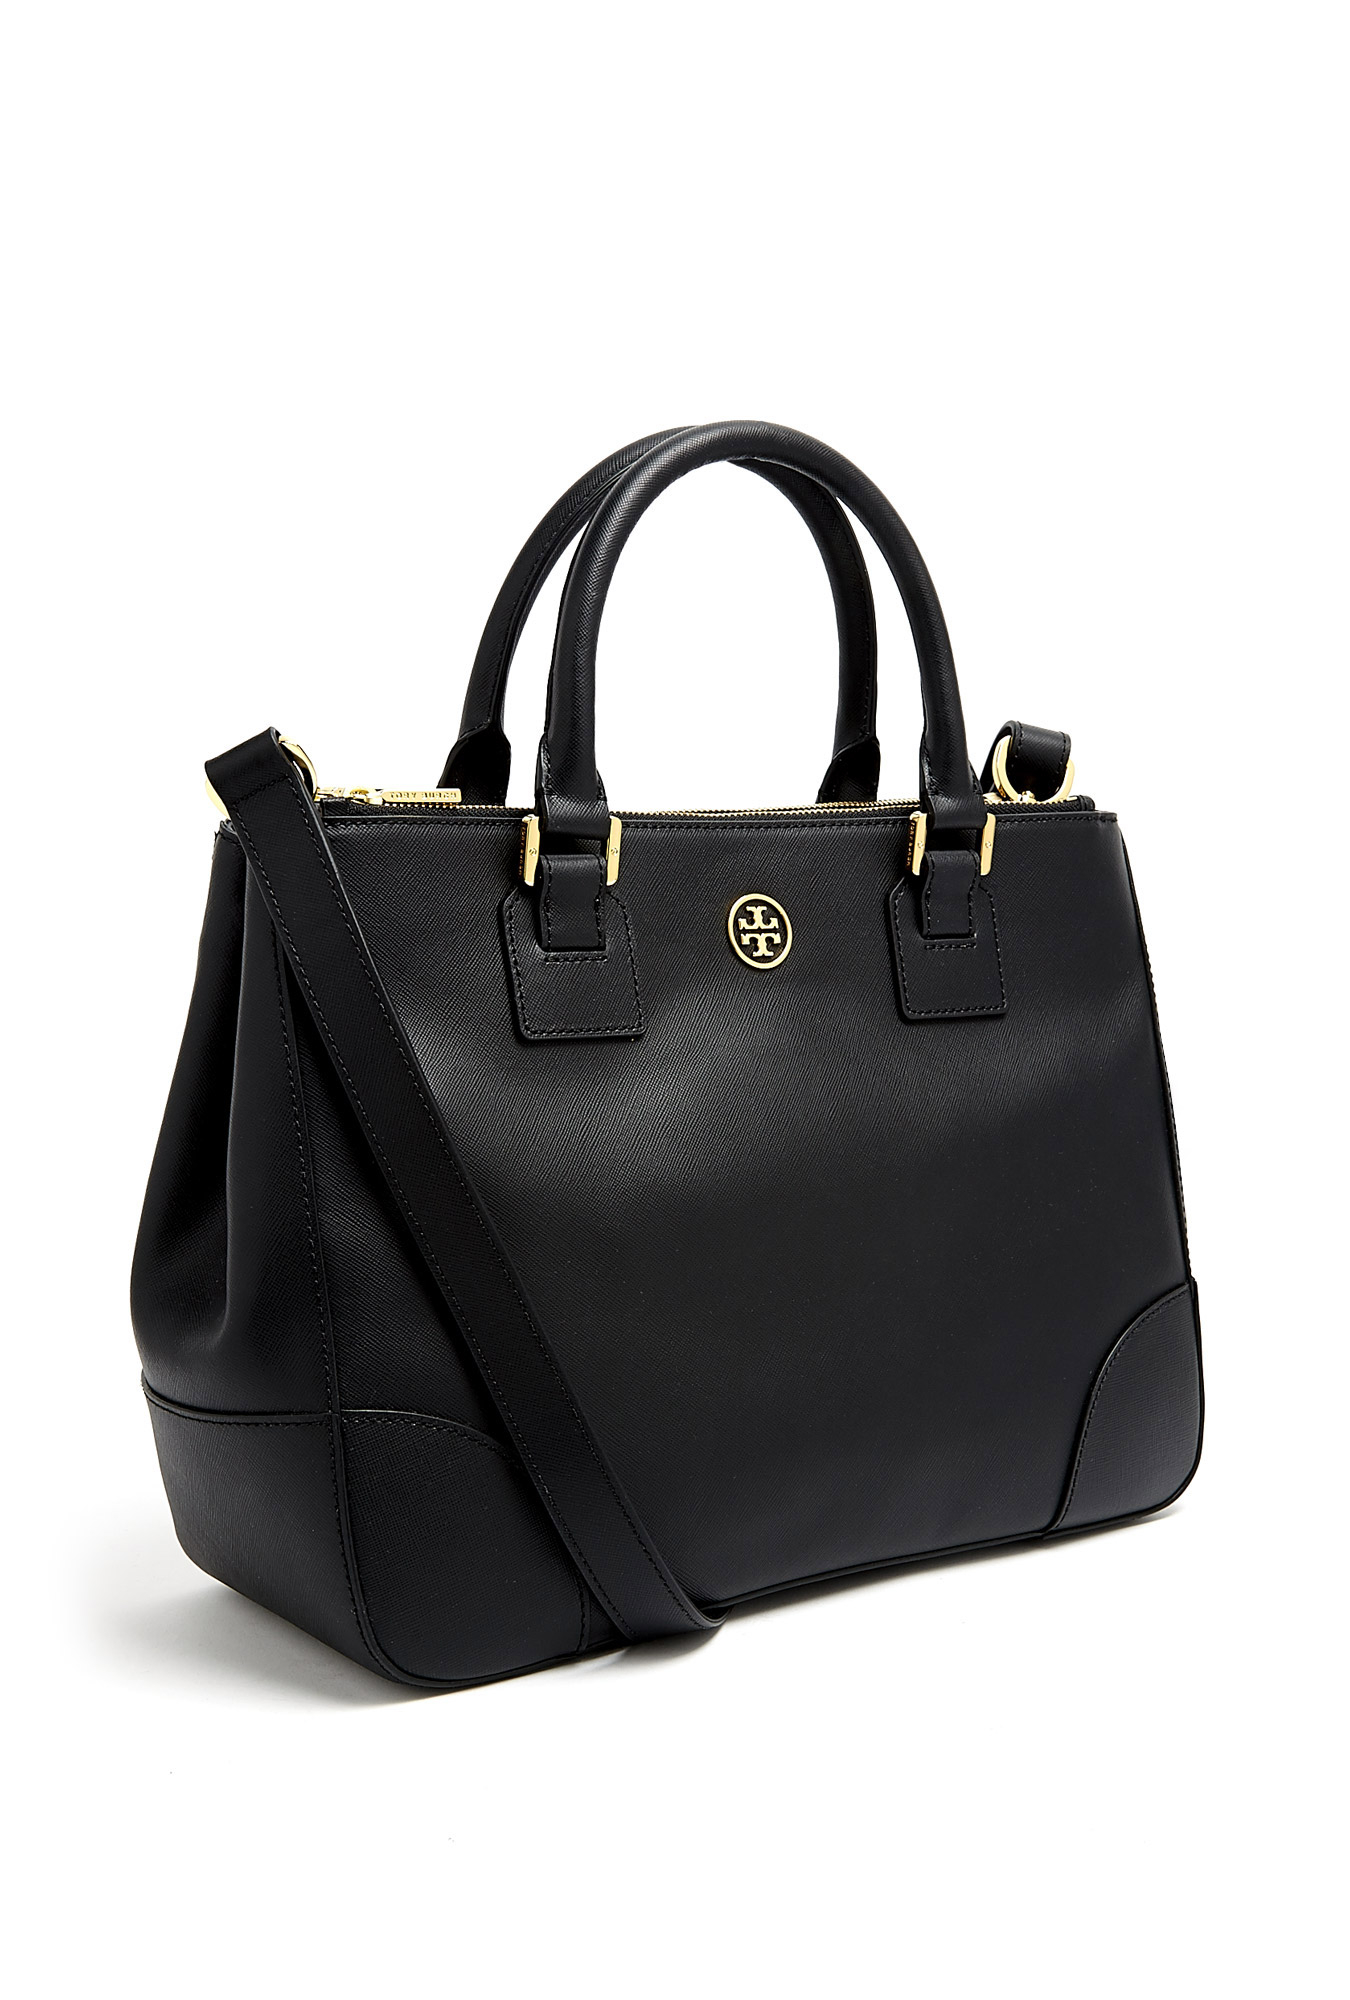 844ab75d4 Malcolm Germain was an avid fan of food and shared that passion with his  friends and family.TORY BURCH Handbags. mini, faux suede, detachable  application, ...